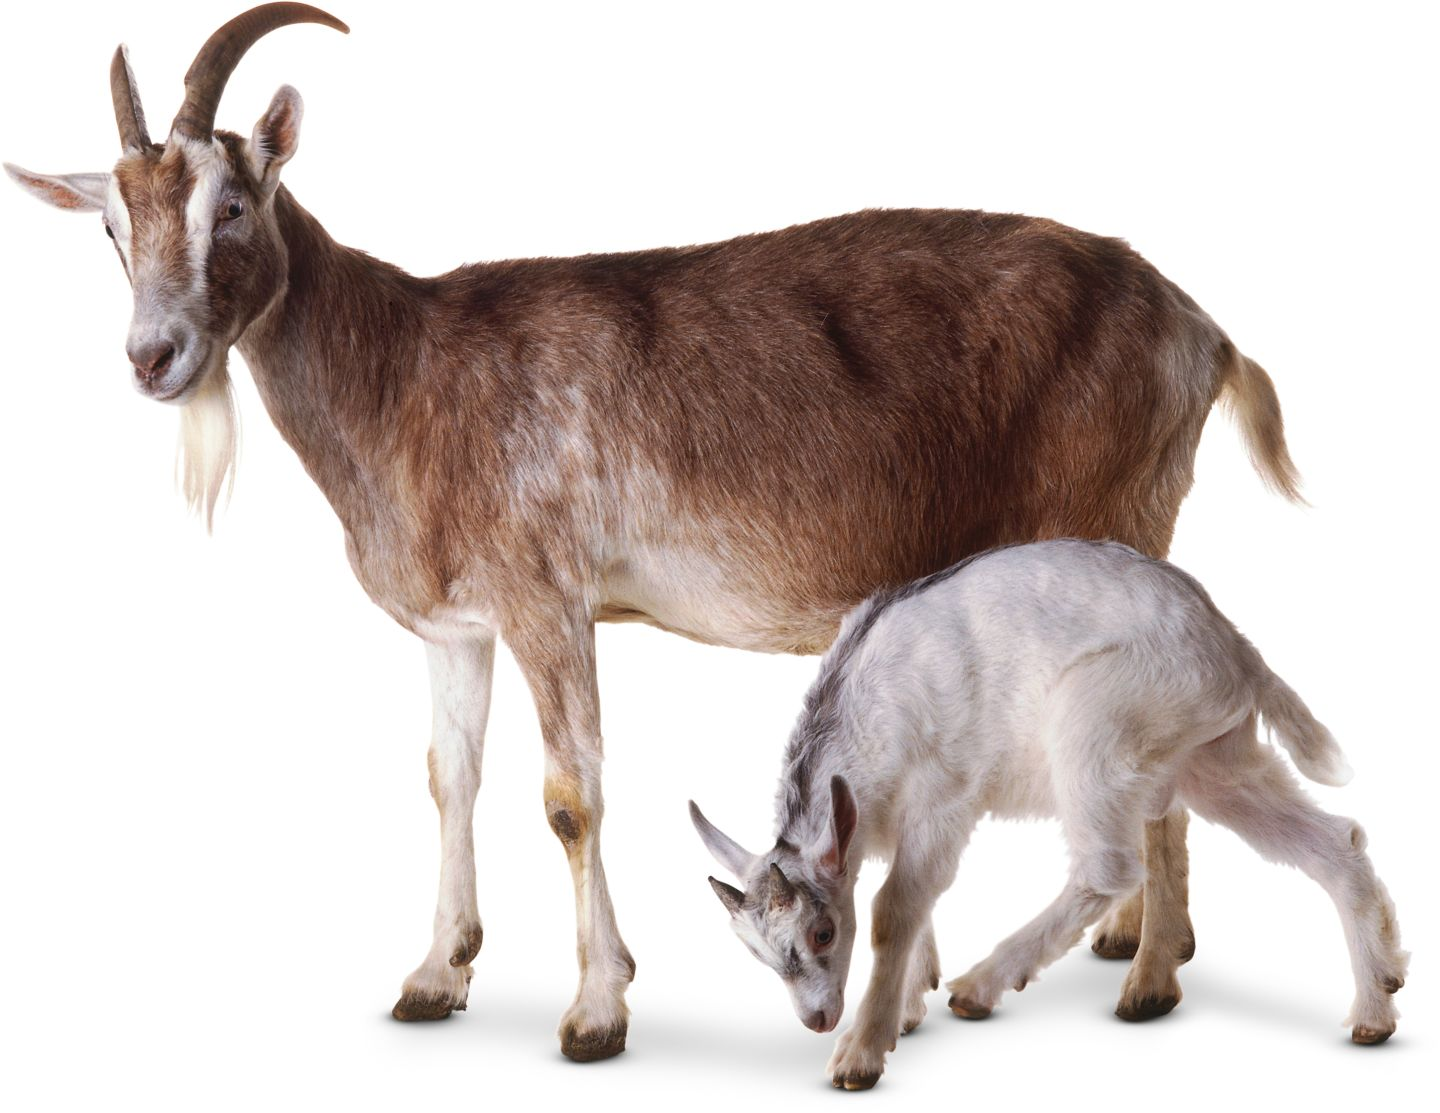 essay on goat for kids Cow essay for kids, குழந்தைகள் மாடு கட்டுரை, , , translation, human translation, automatic translation search human translated sentences.